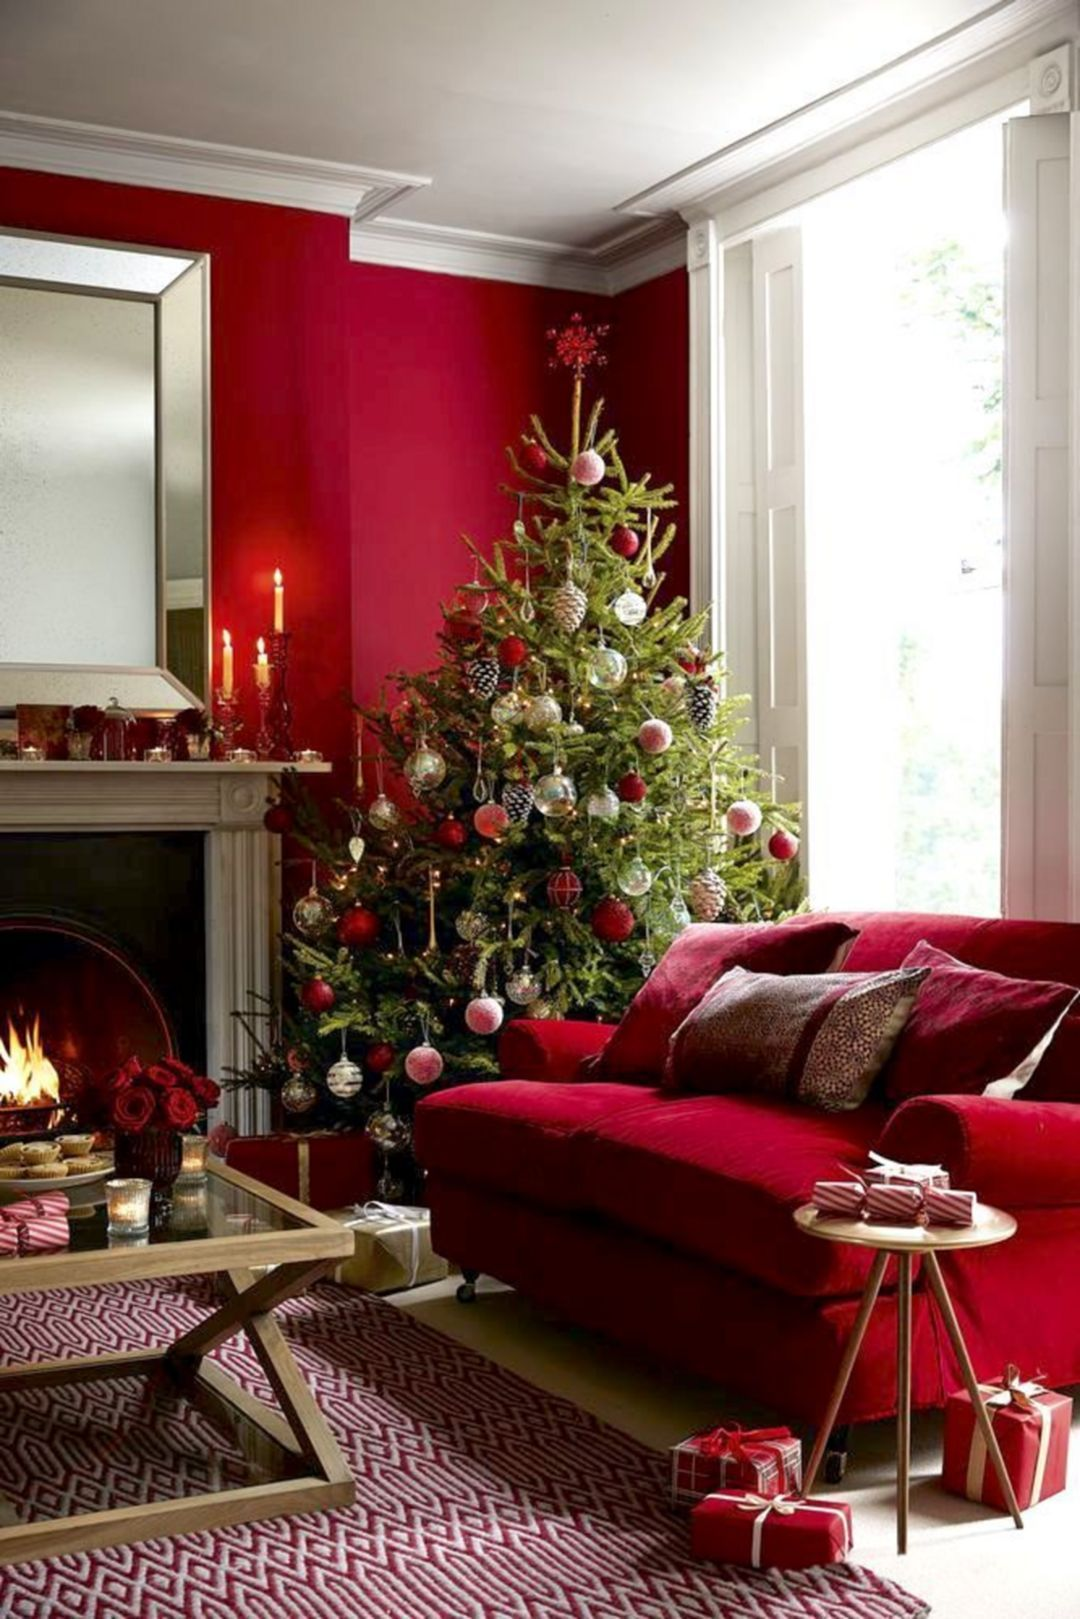 40 Amazing Christmas Living Room Decorating Ideas to ...